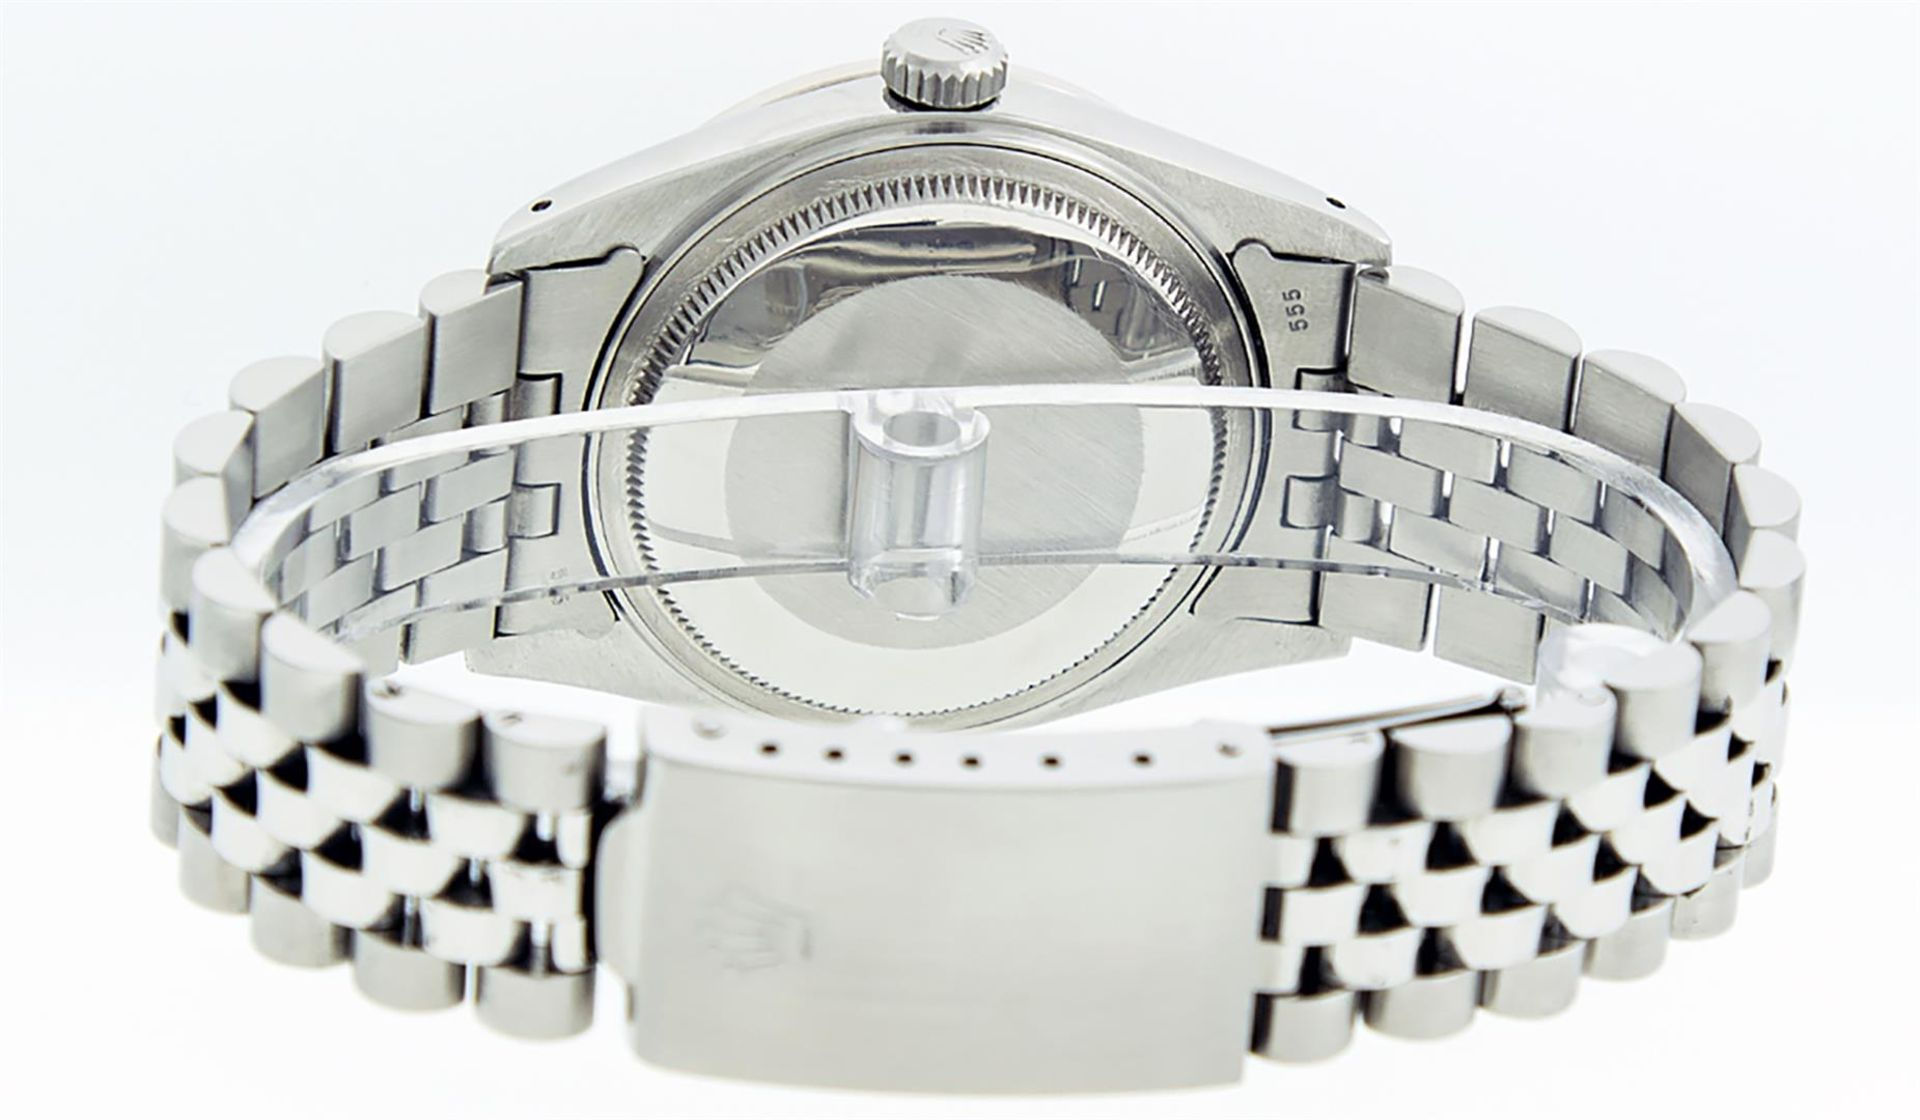 Rolex Mens Stainless Steel Meteorite Diamond And Ruby Datejust Wristwatch 36MM - Image 2 of 9